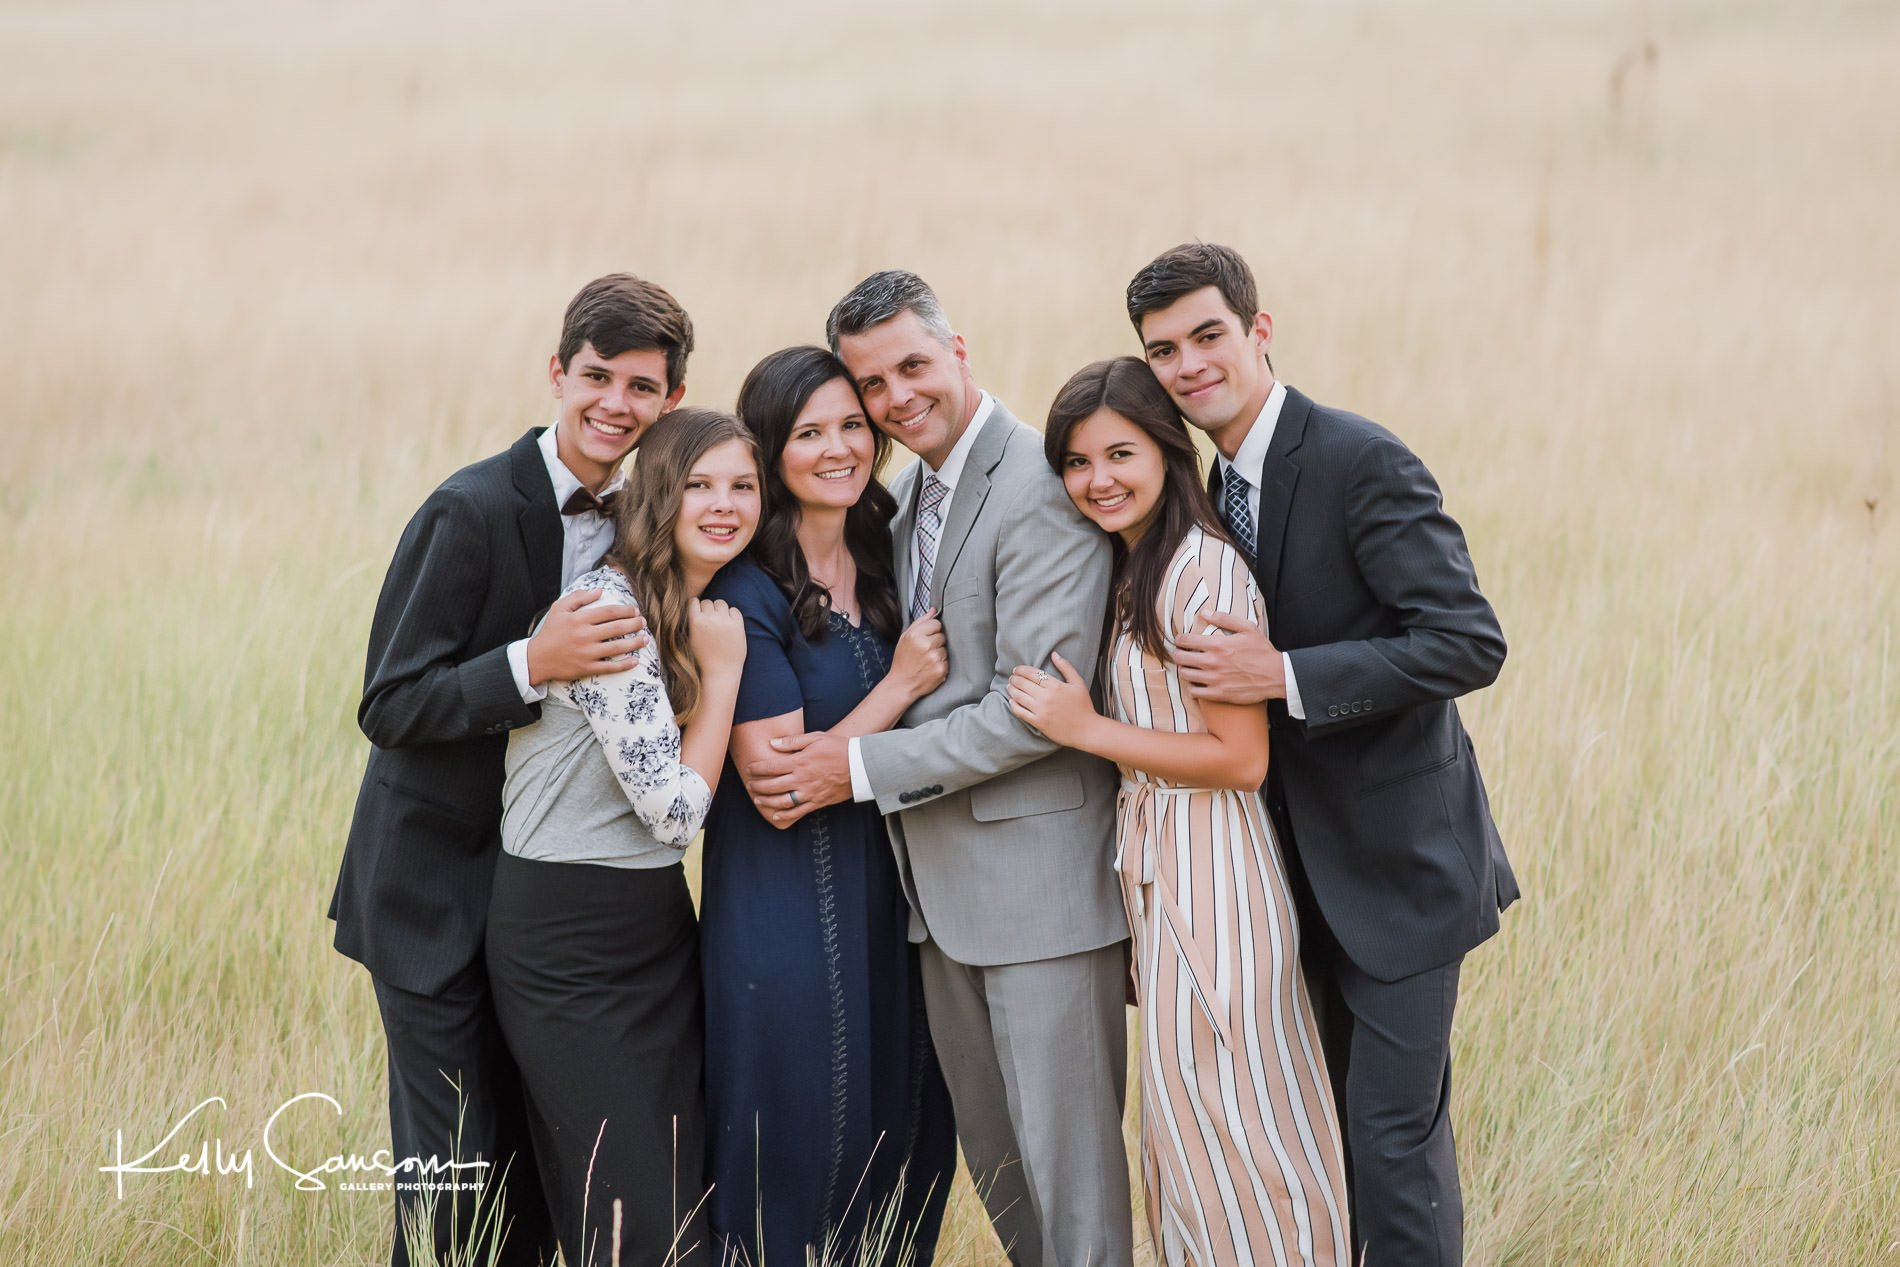 A family snuggling together in tall grasses for Bountiful portrait photography.